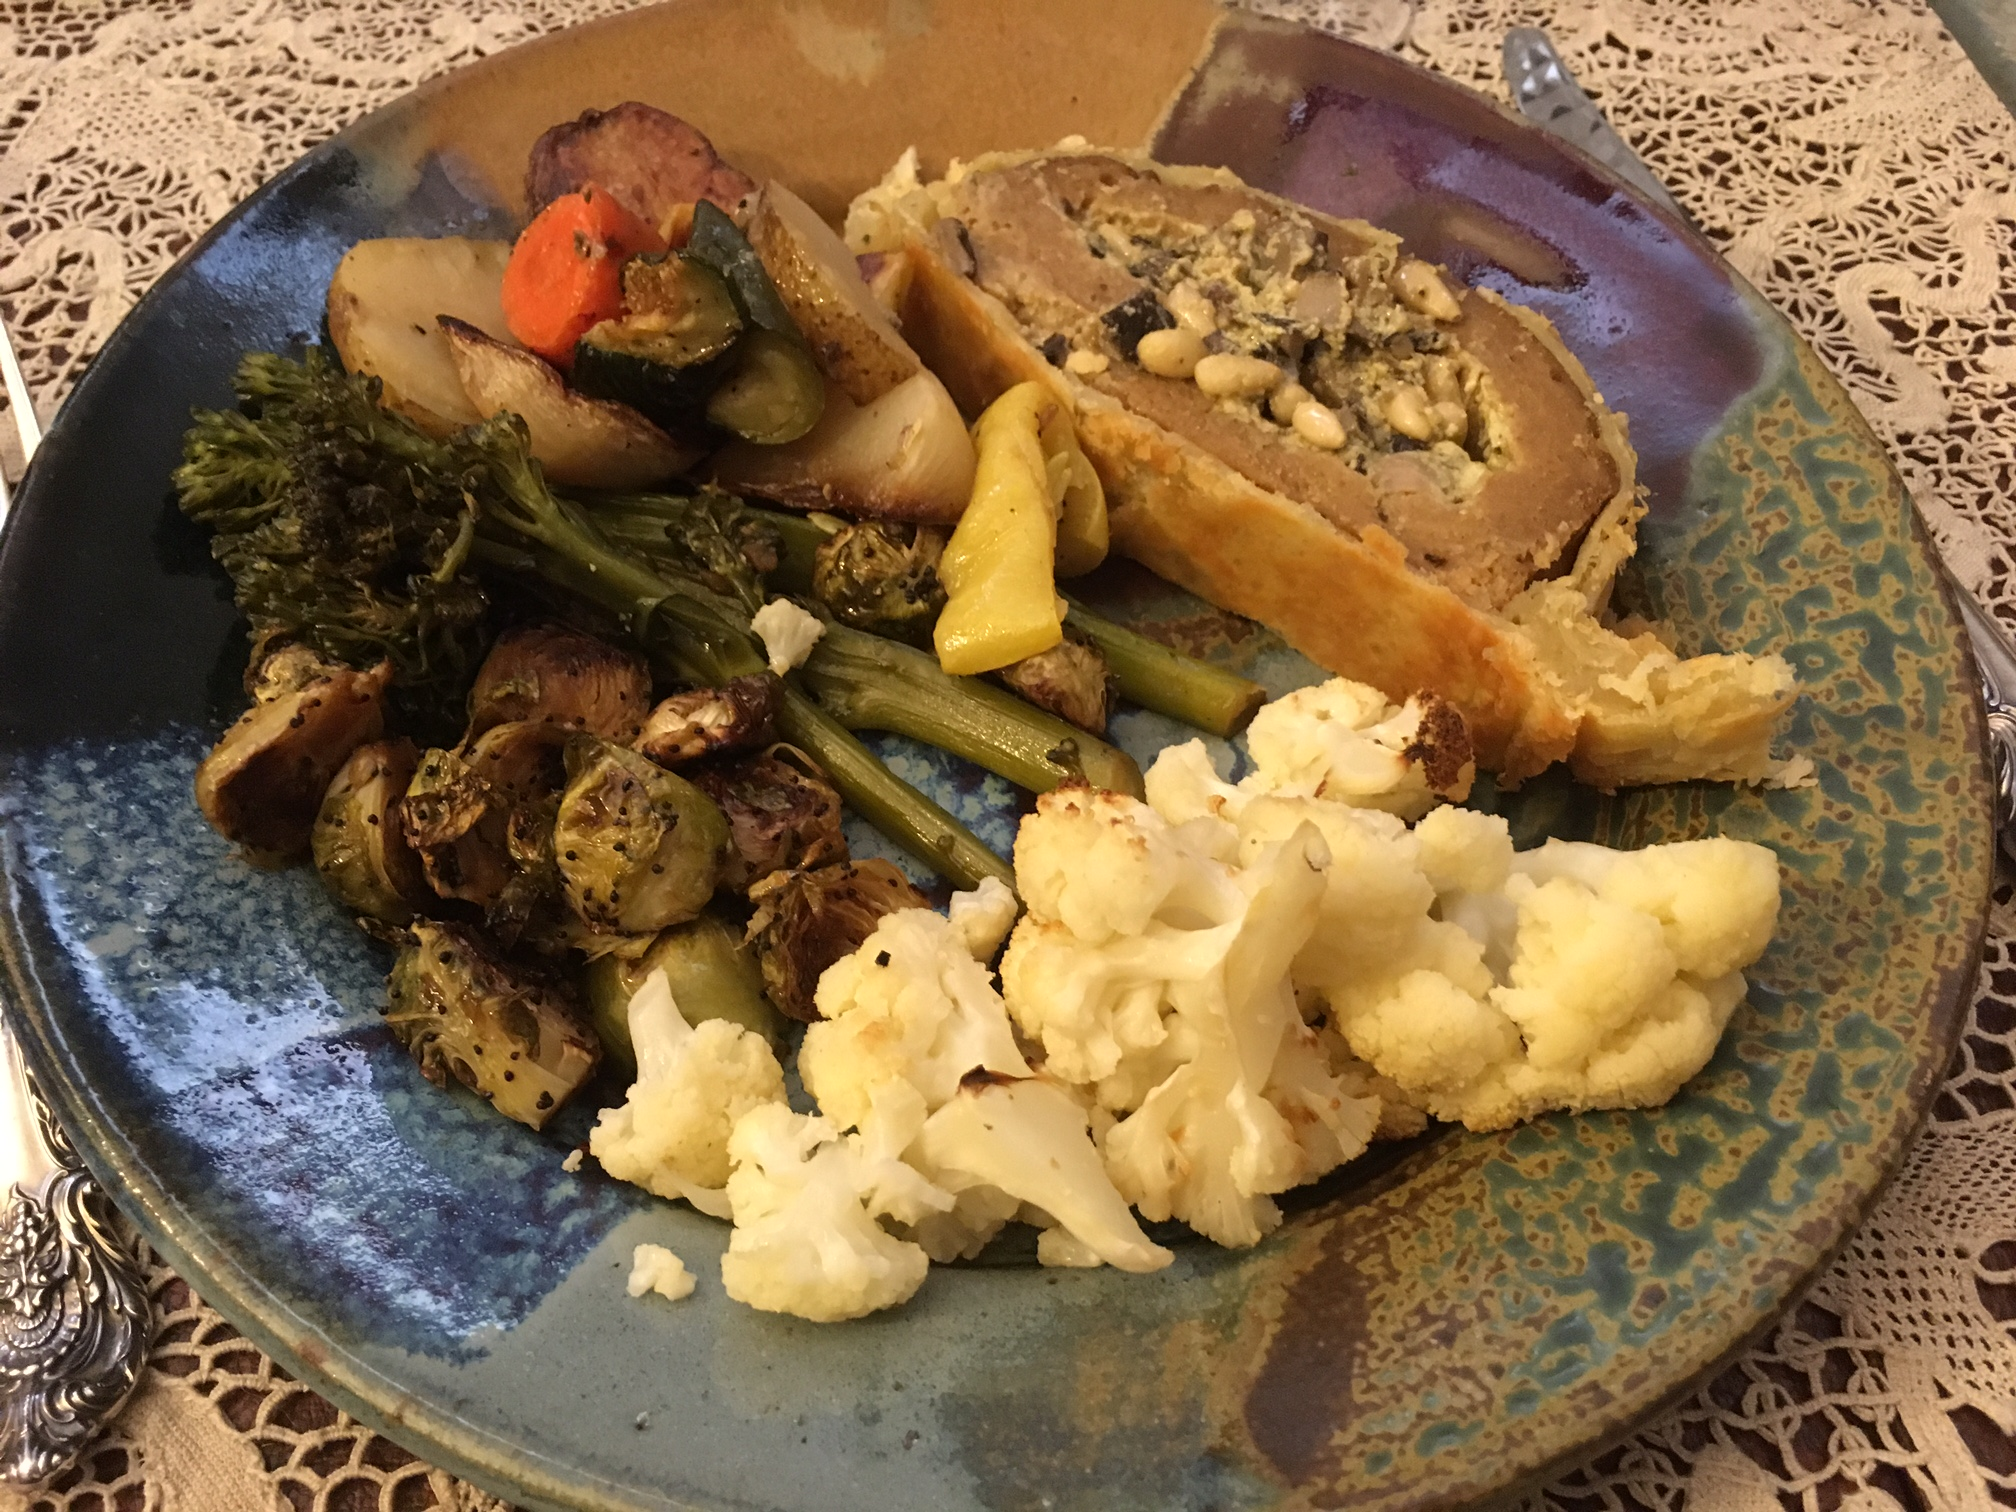 Stuffed seitan roast en croute with roasted veggies, broccolini, Brussel sprouts, and cauliflower